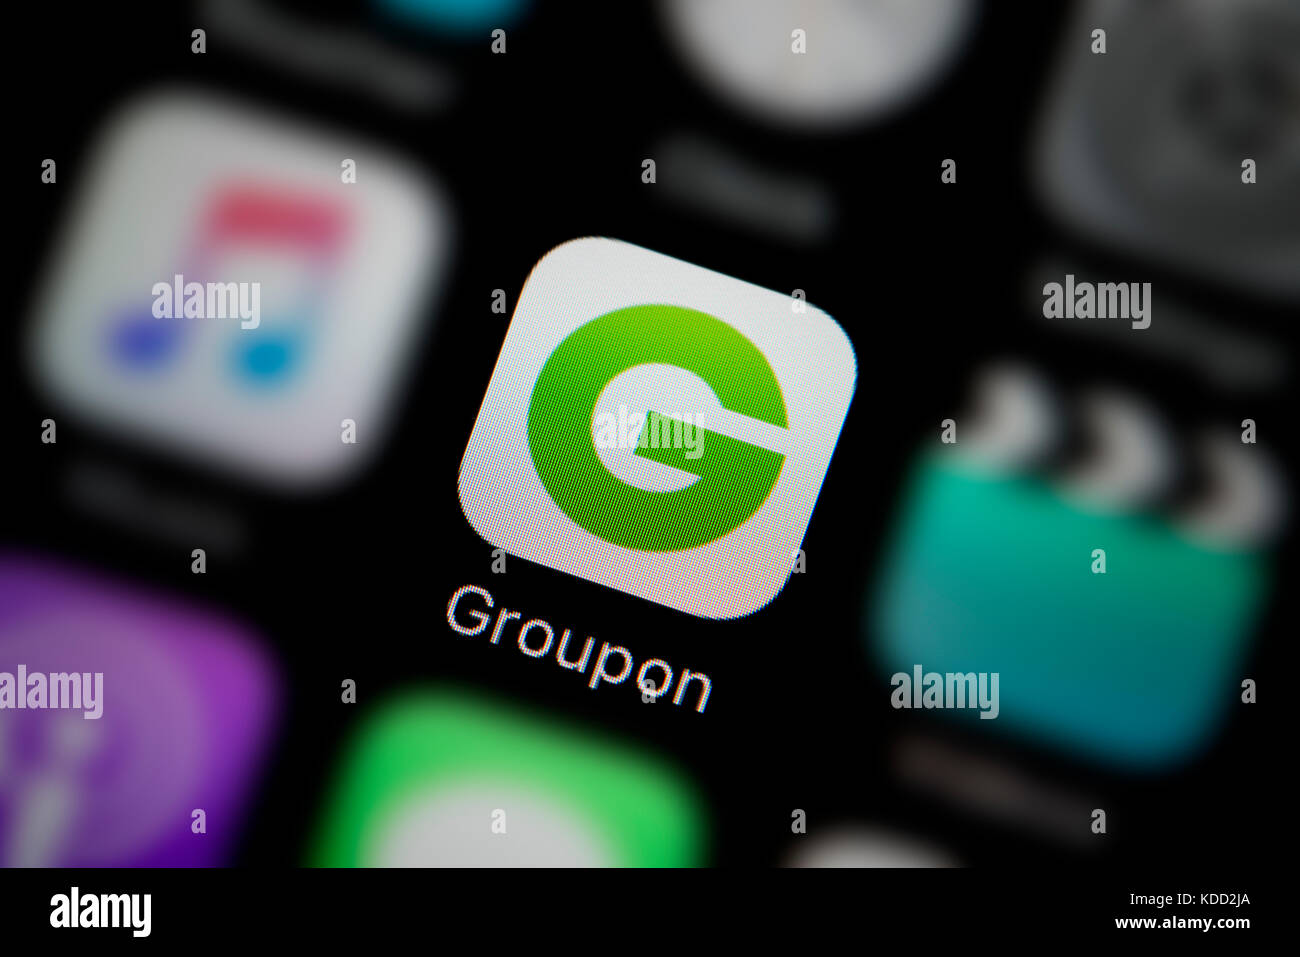 groupon logo stock photos amp groupon logo stock images alamy